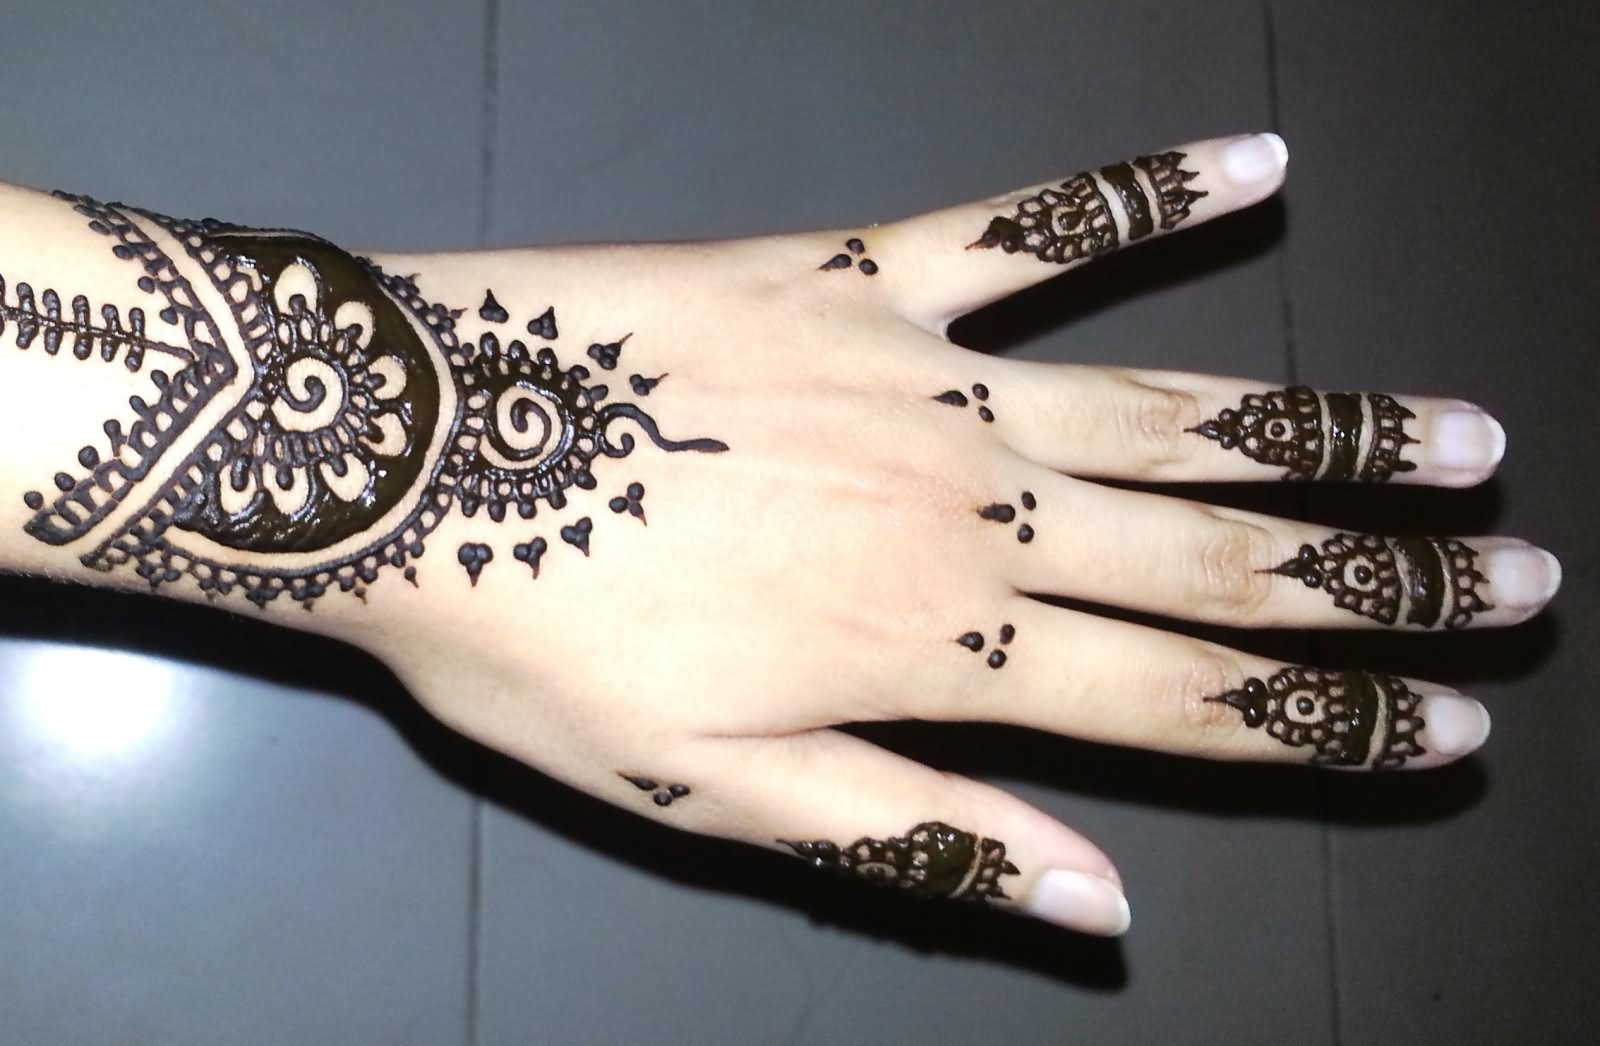 Henna Mehndi Tattoo Designs Idea For Wrist: 29+ Simple Henna Tattoos